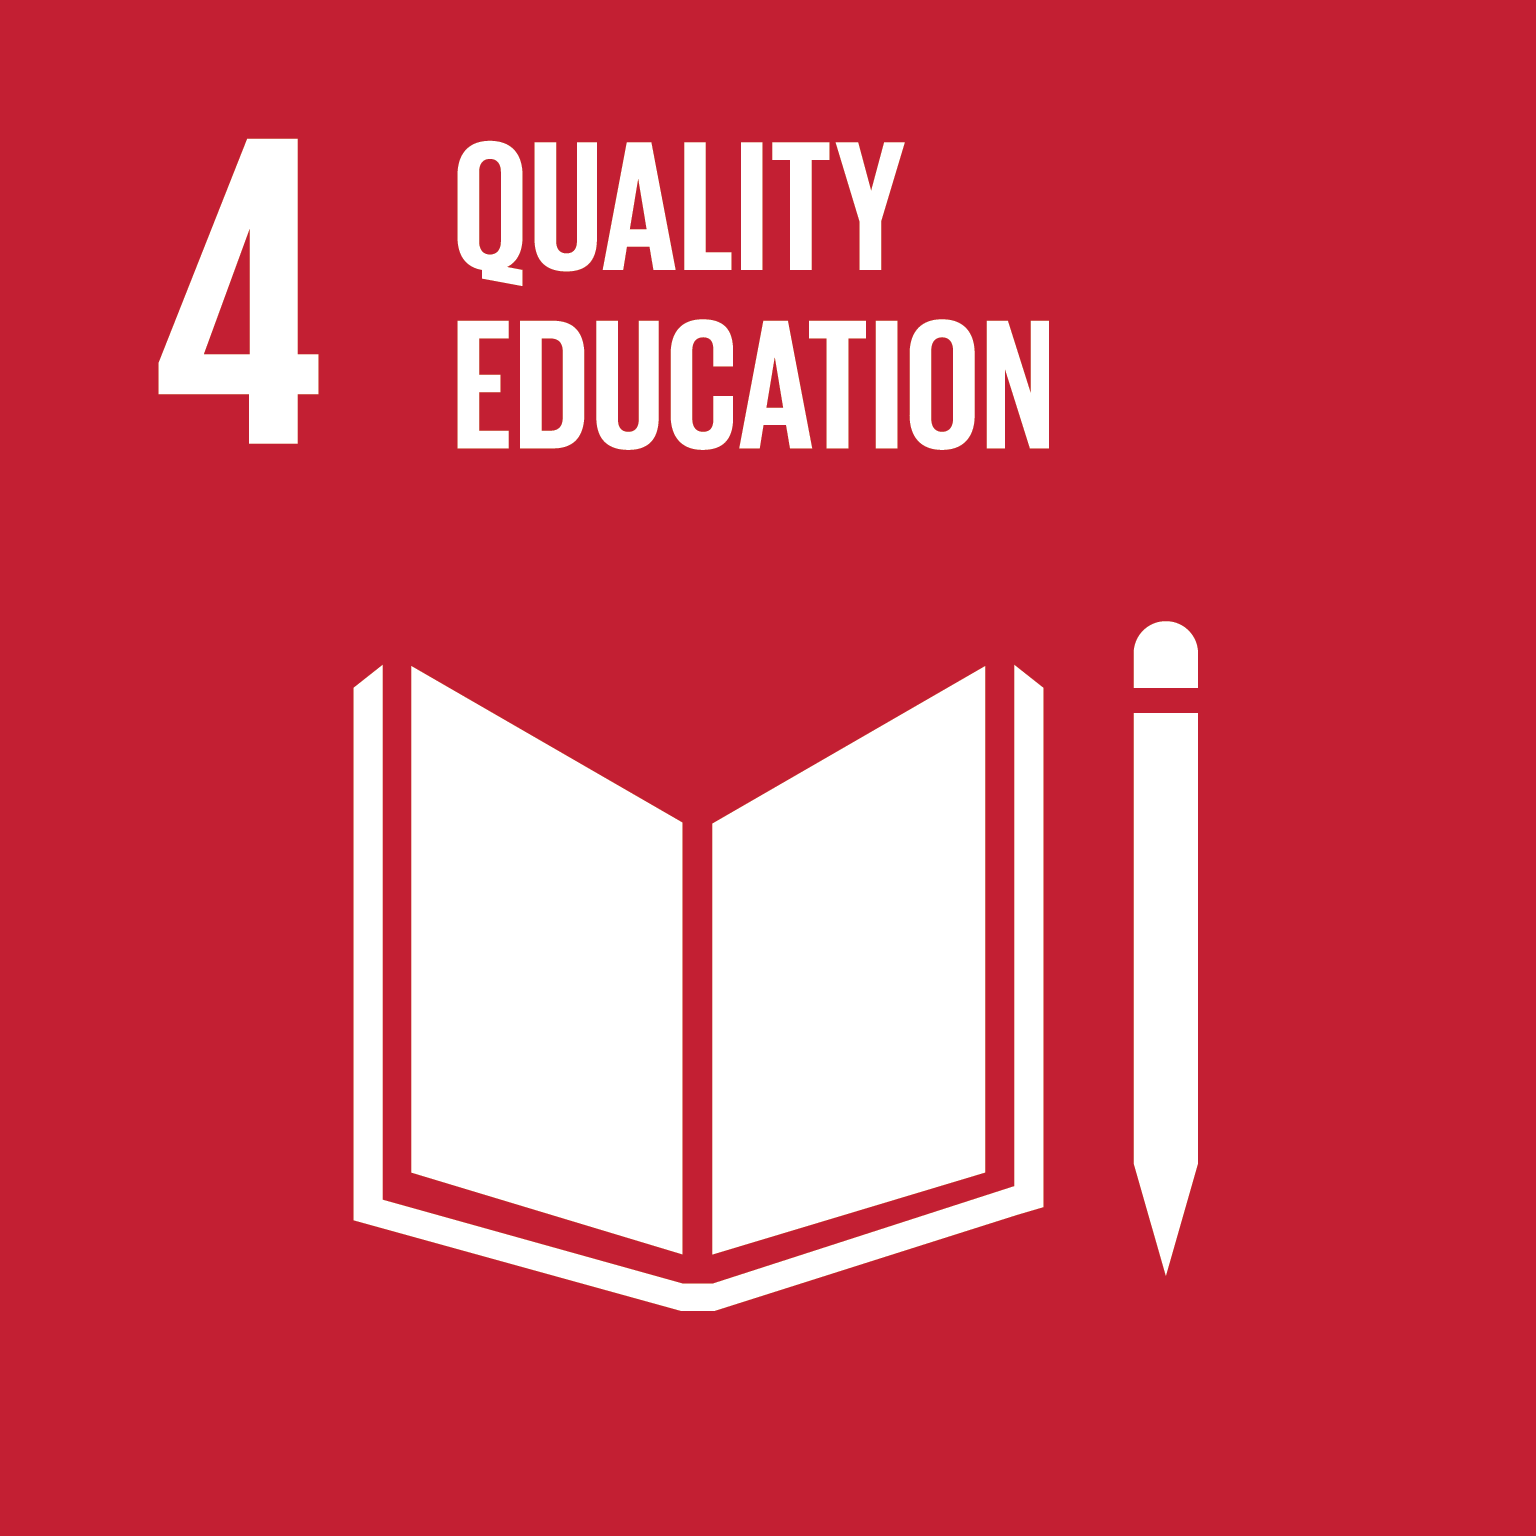 Goal 04: Quality Education